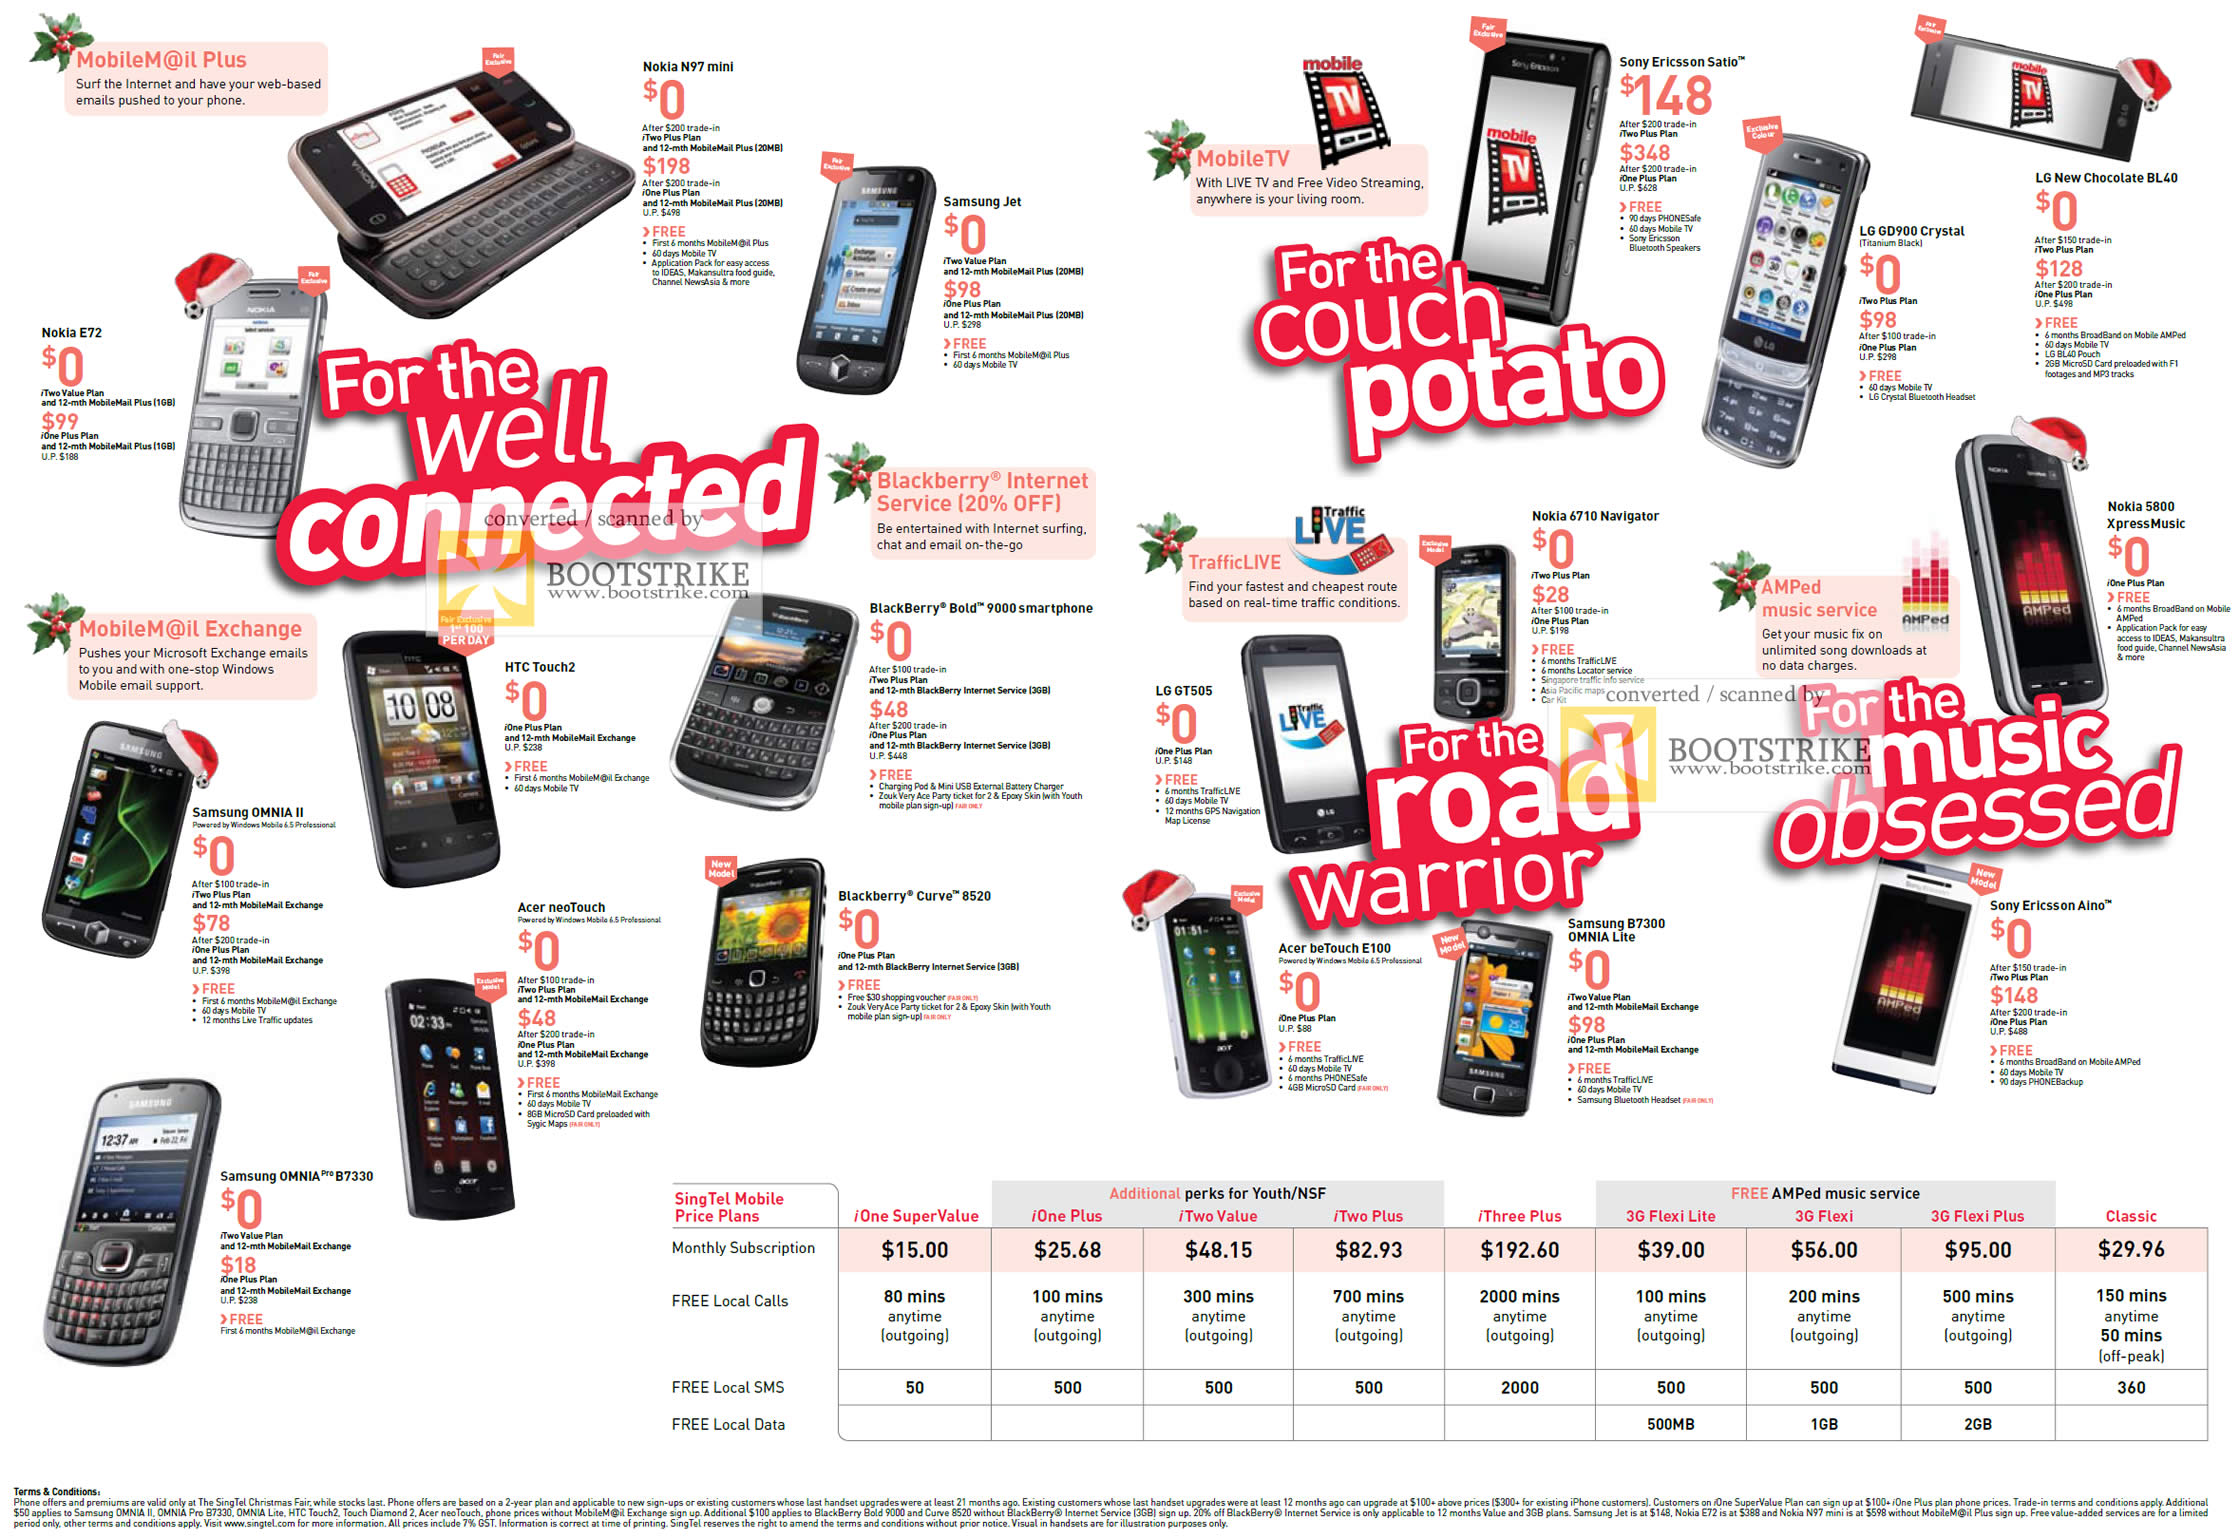 Recharge mobile Singtel Singapore for yourself, friends or family